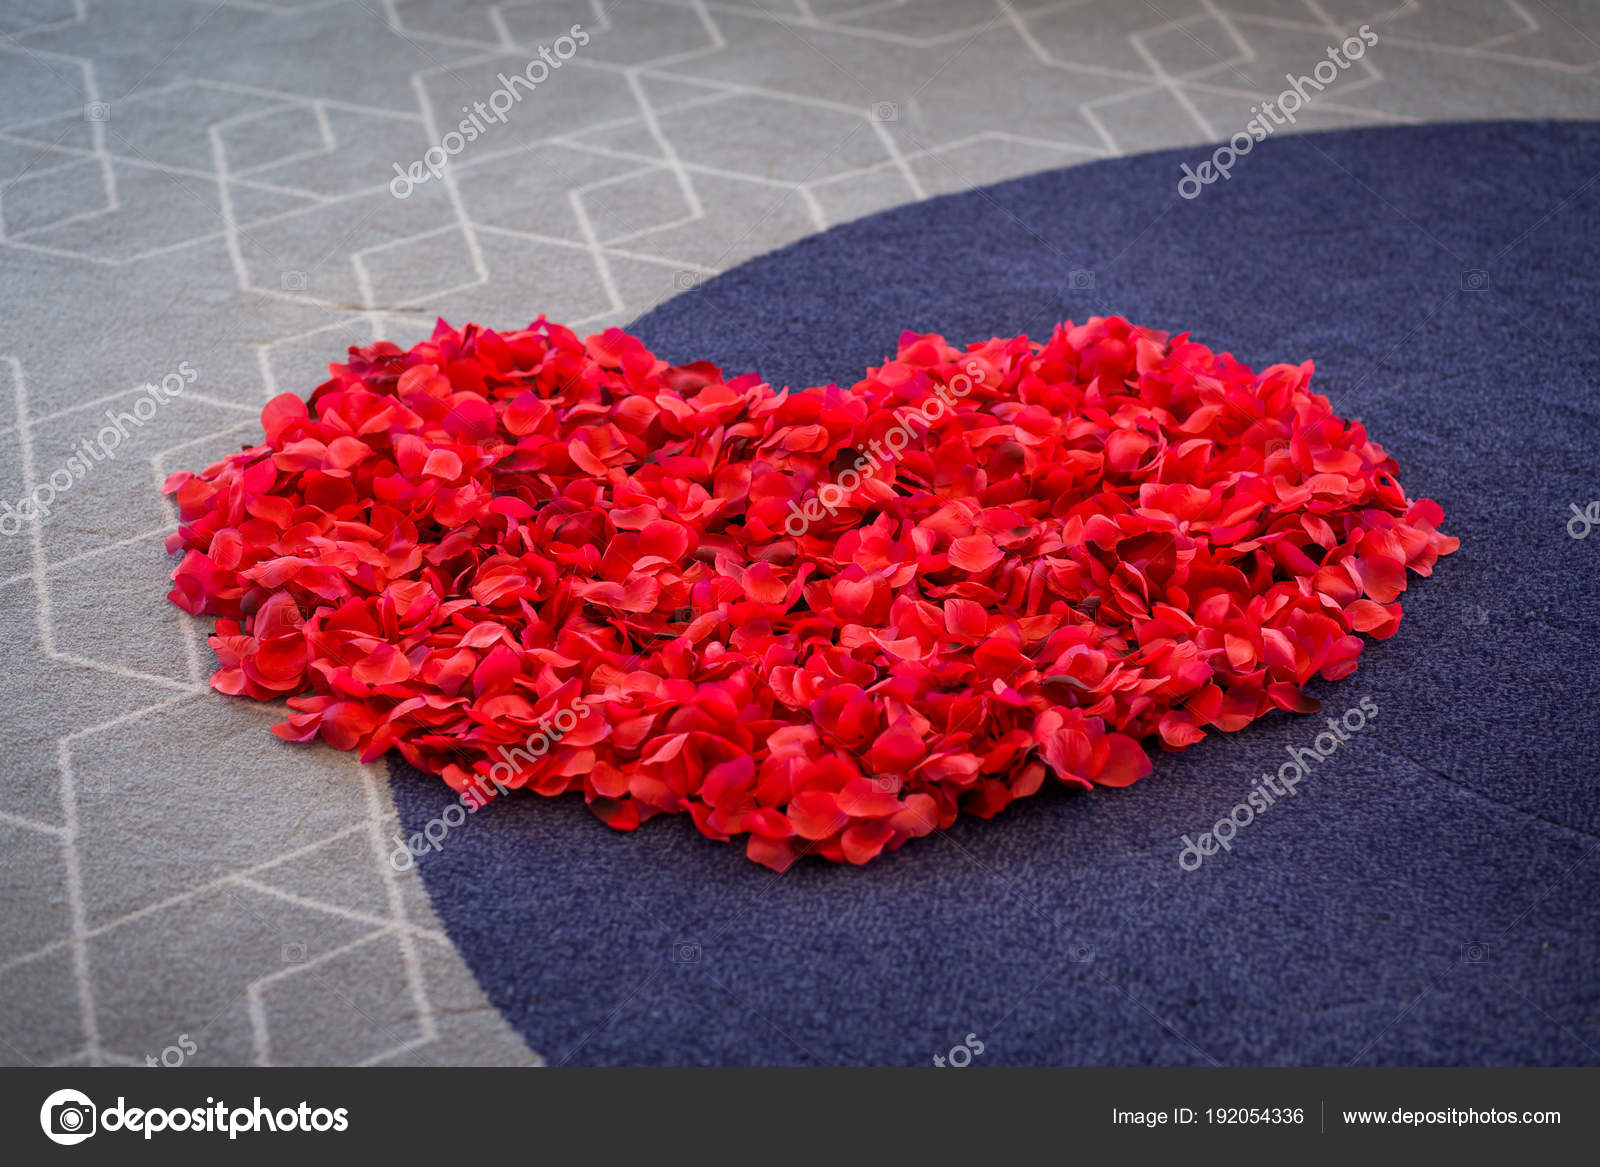 Big Heart From Red Rose Petals On The Carpet Wedding Ceremony